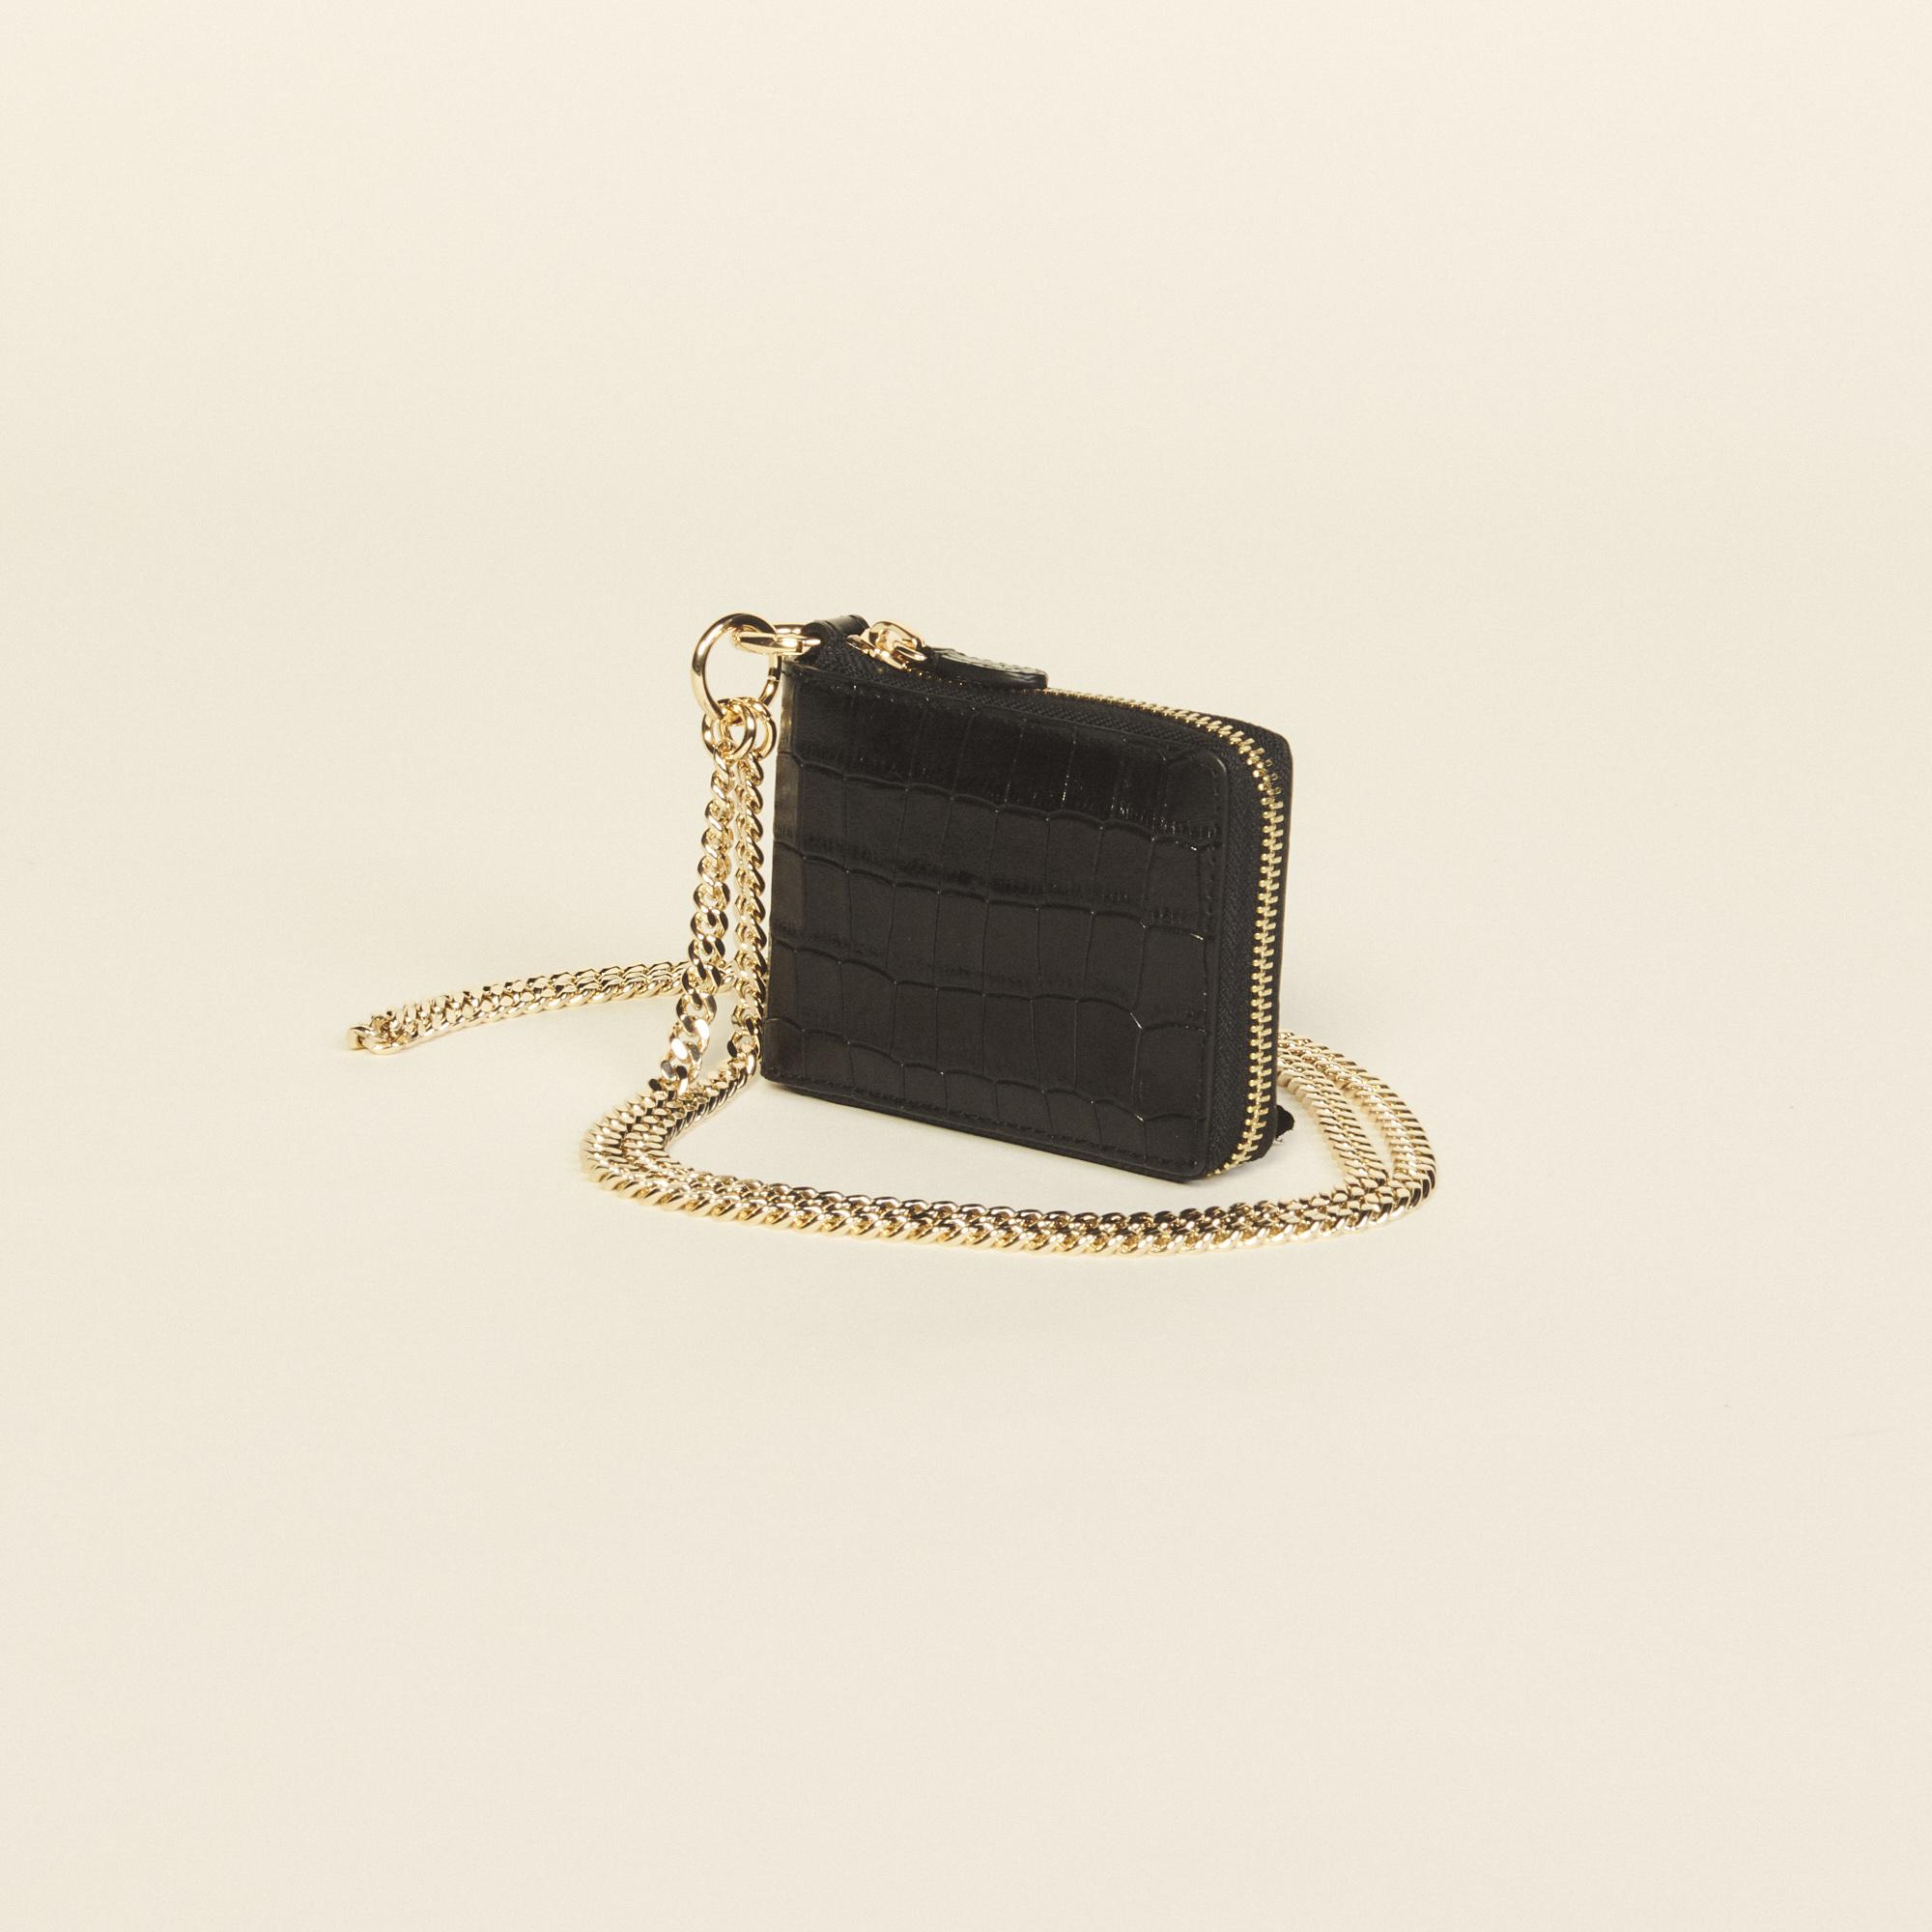 Purse with chain